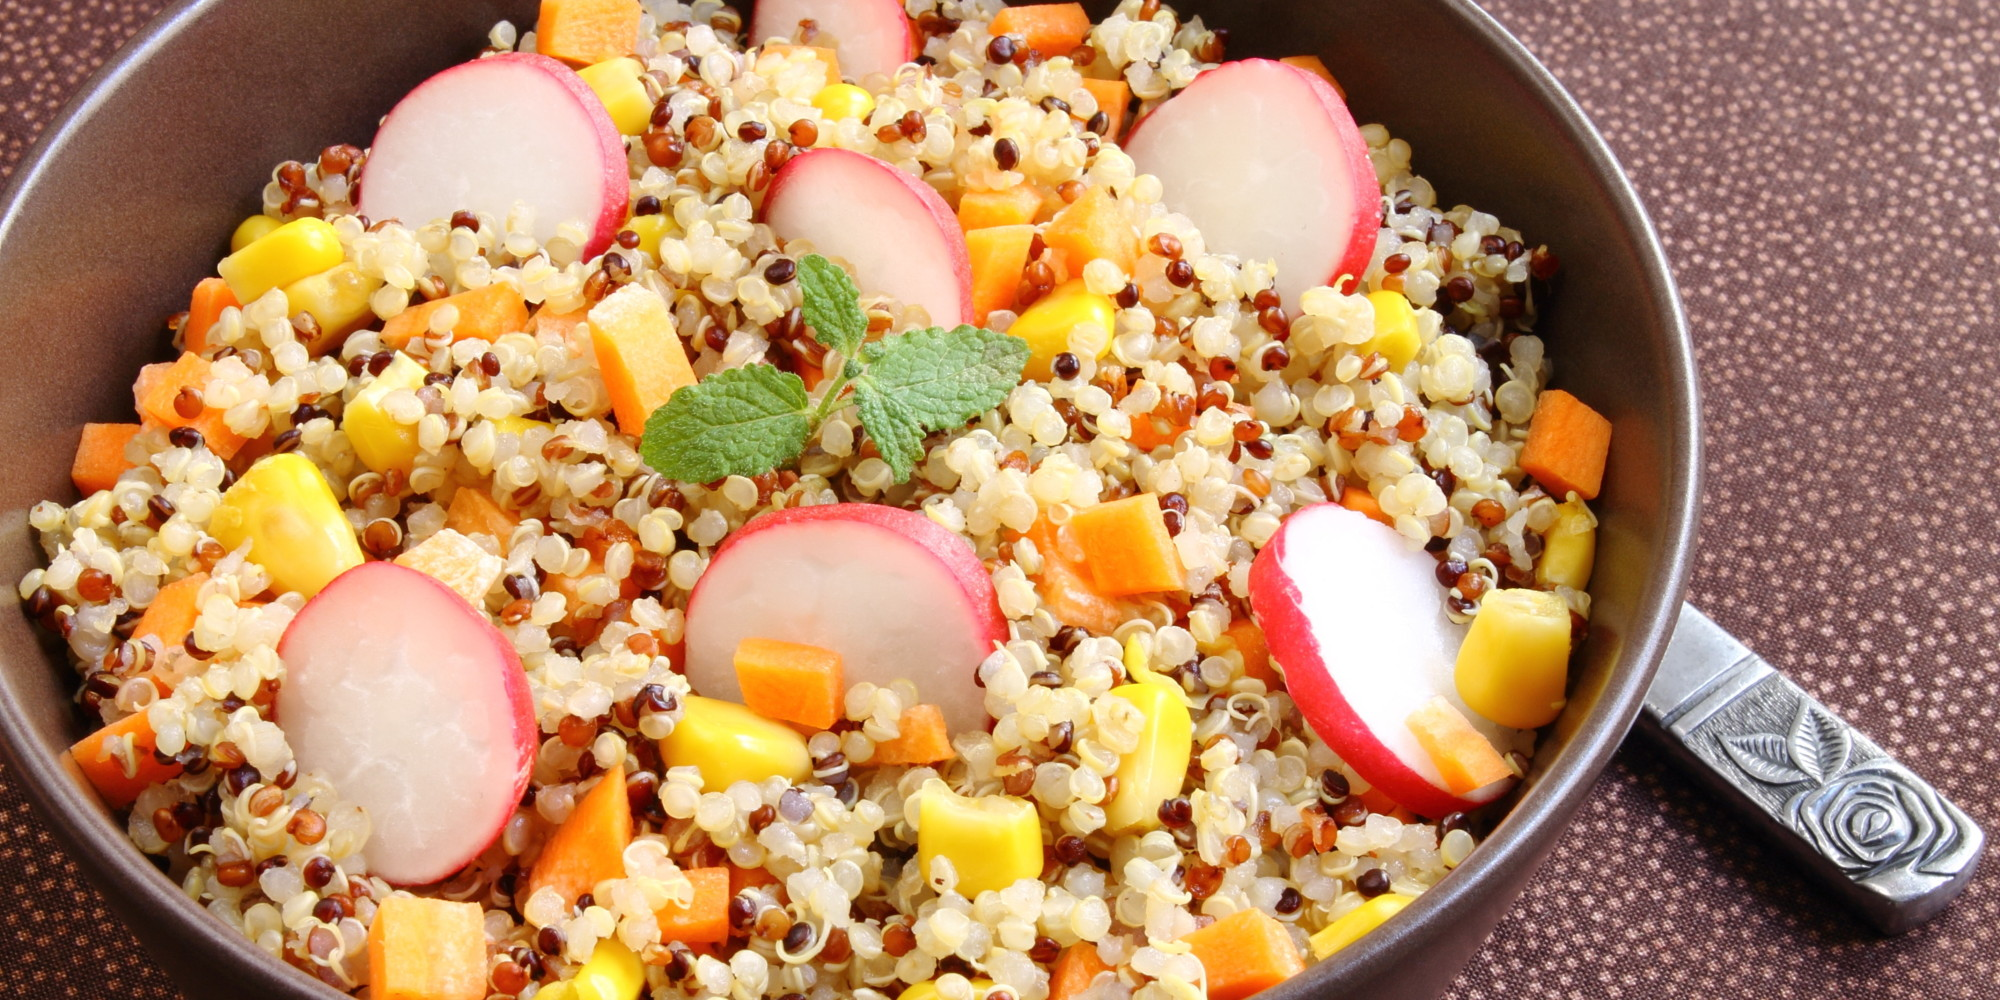 How To Cook Quinoa (video)